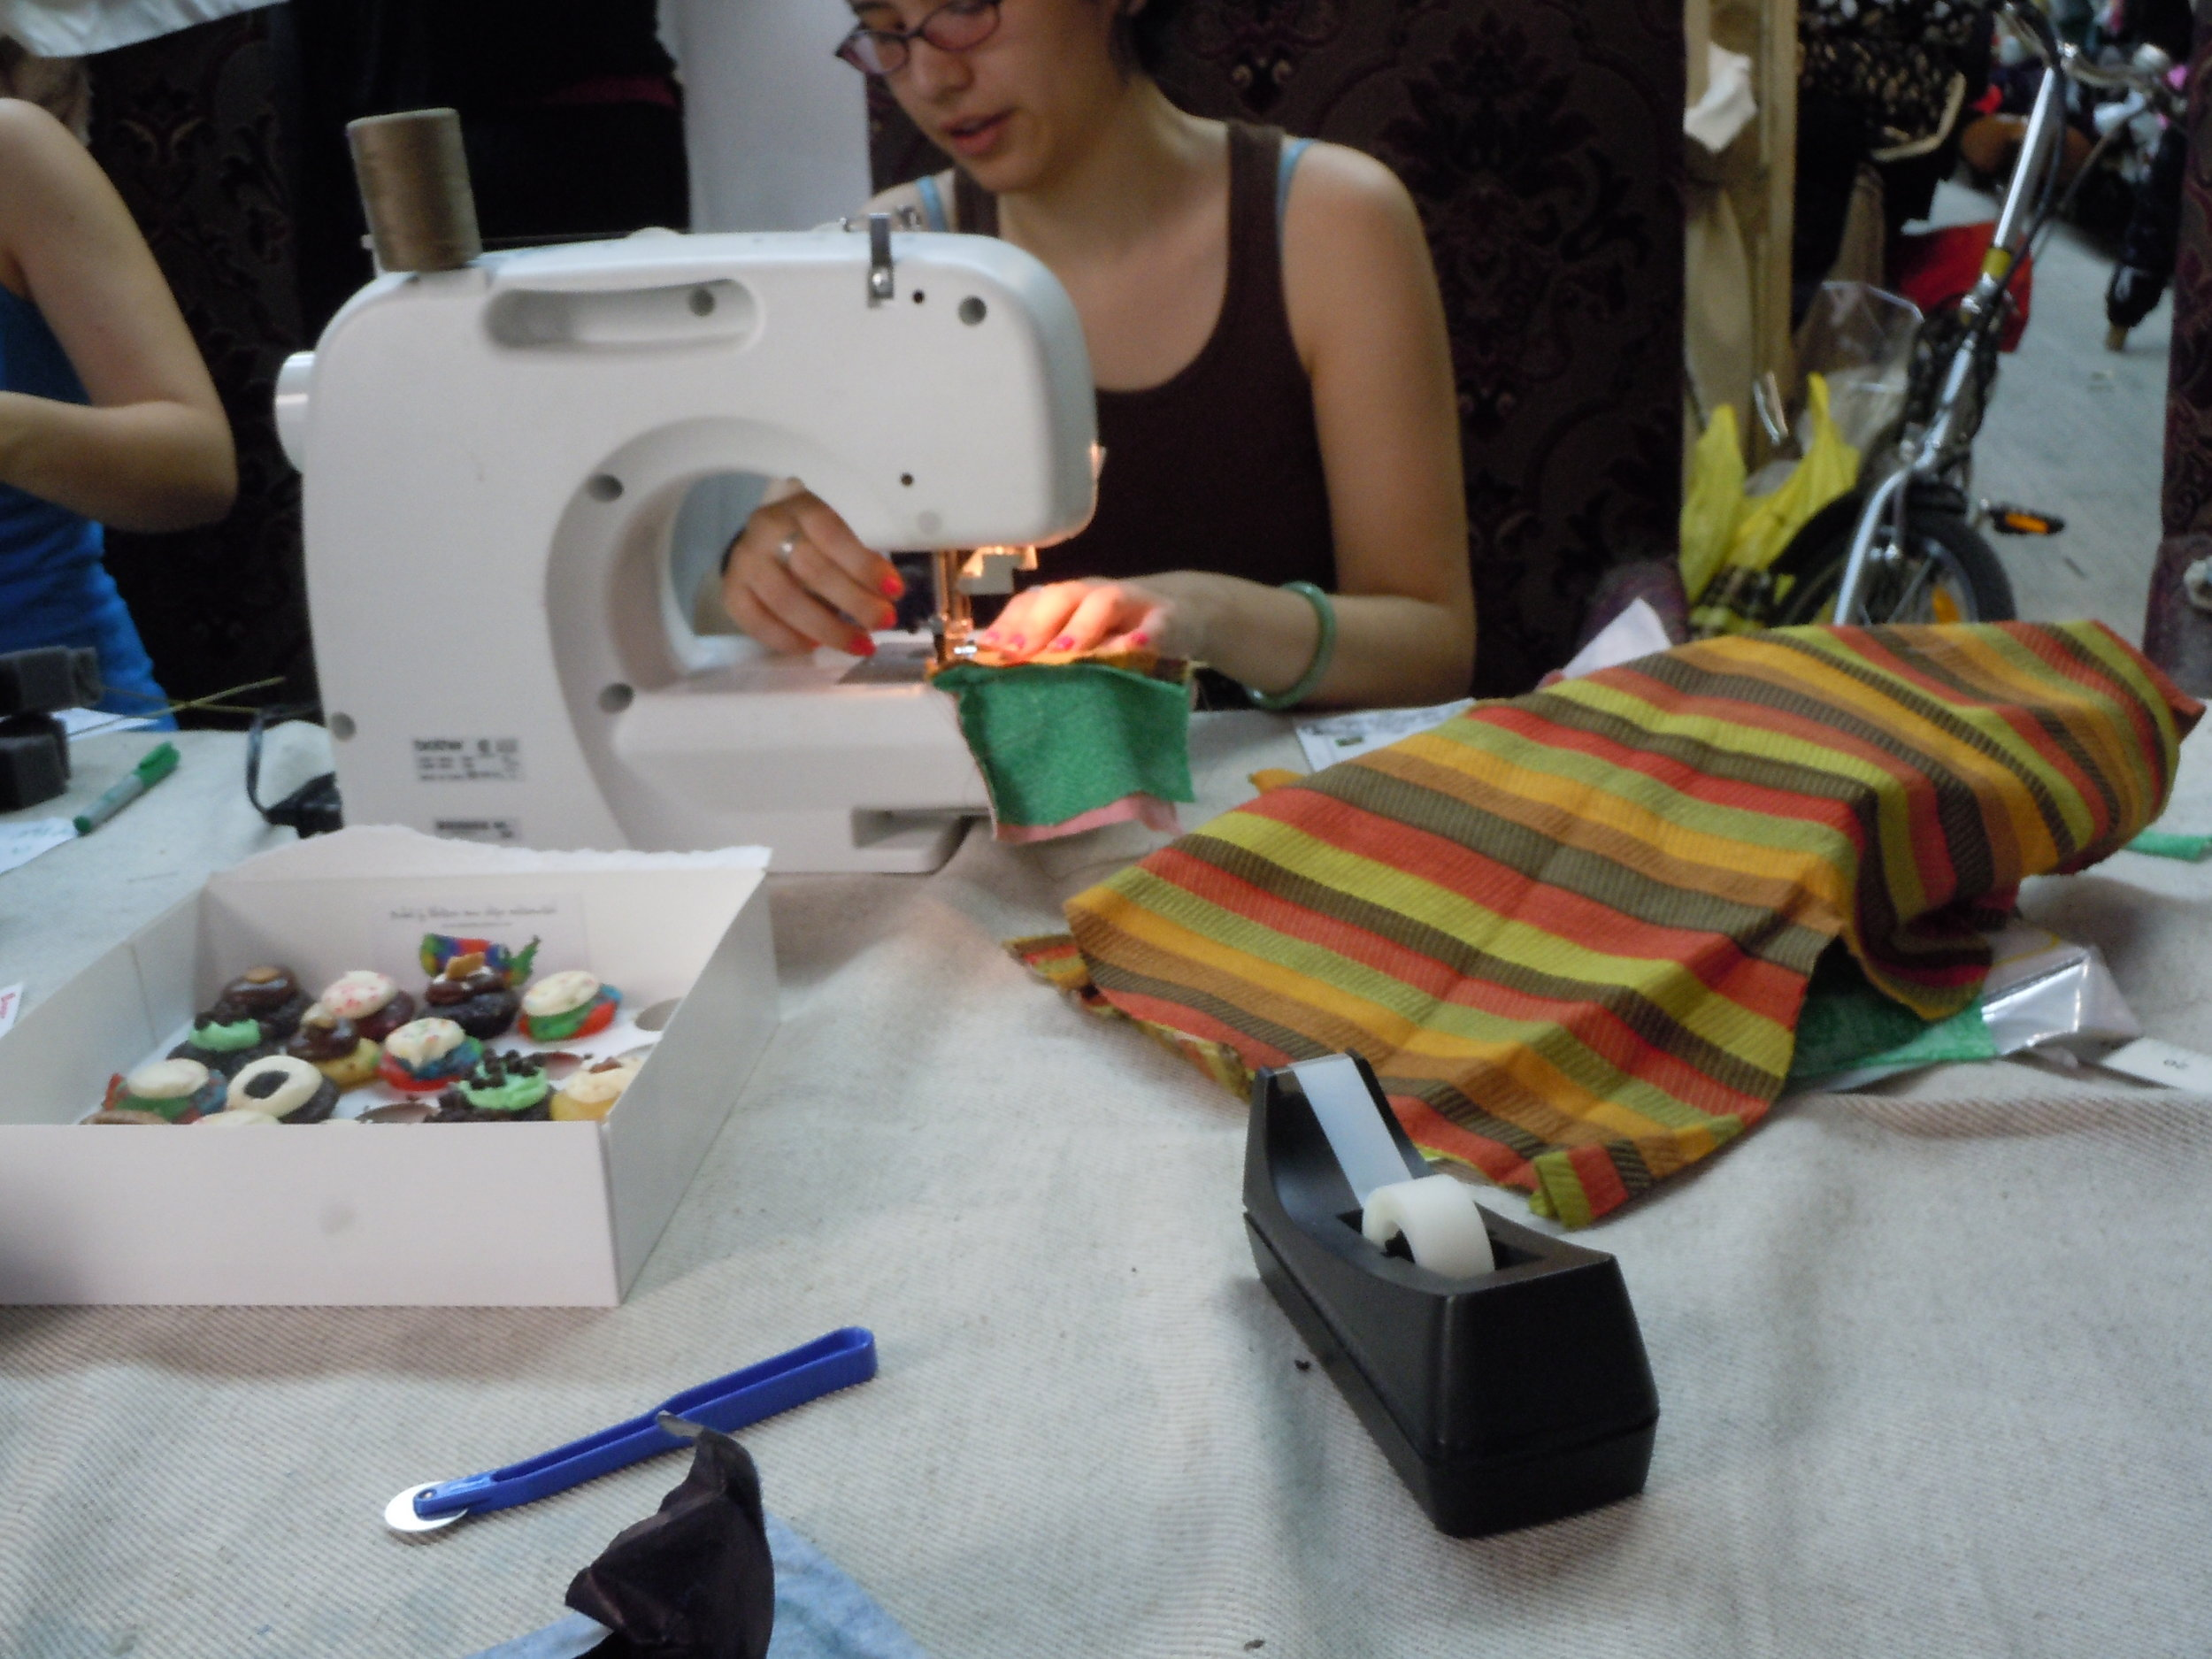 sewing-the-pillow_5063416039_o.jpg